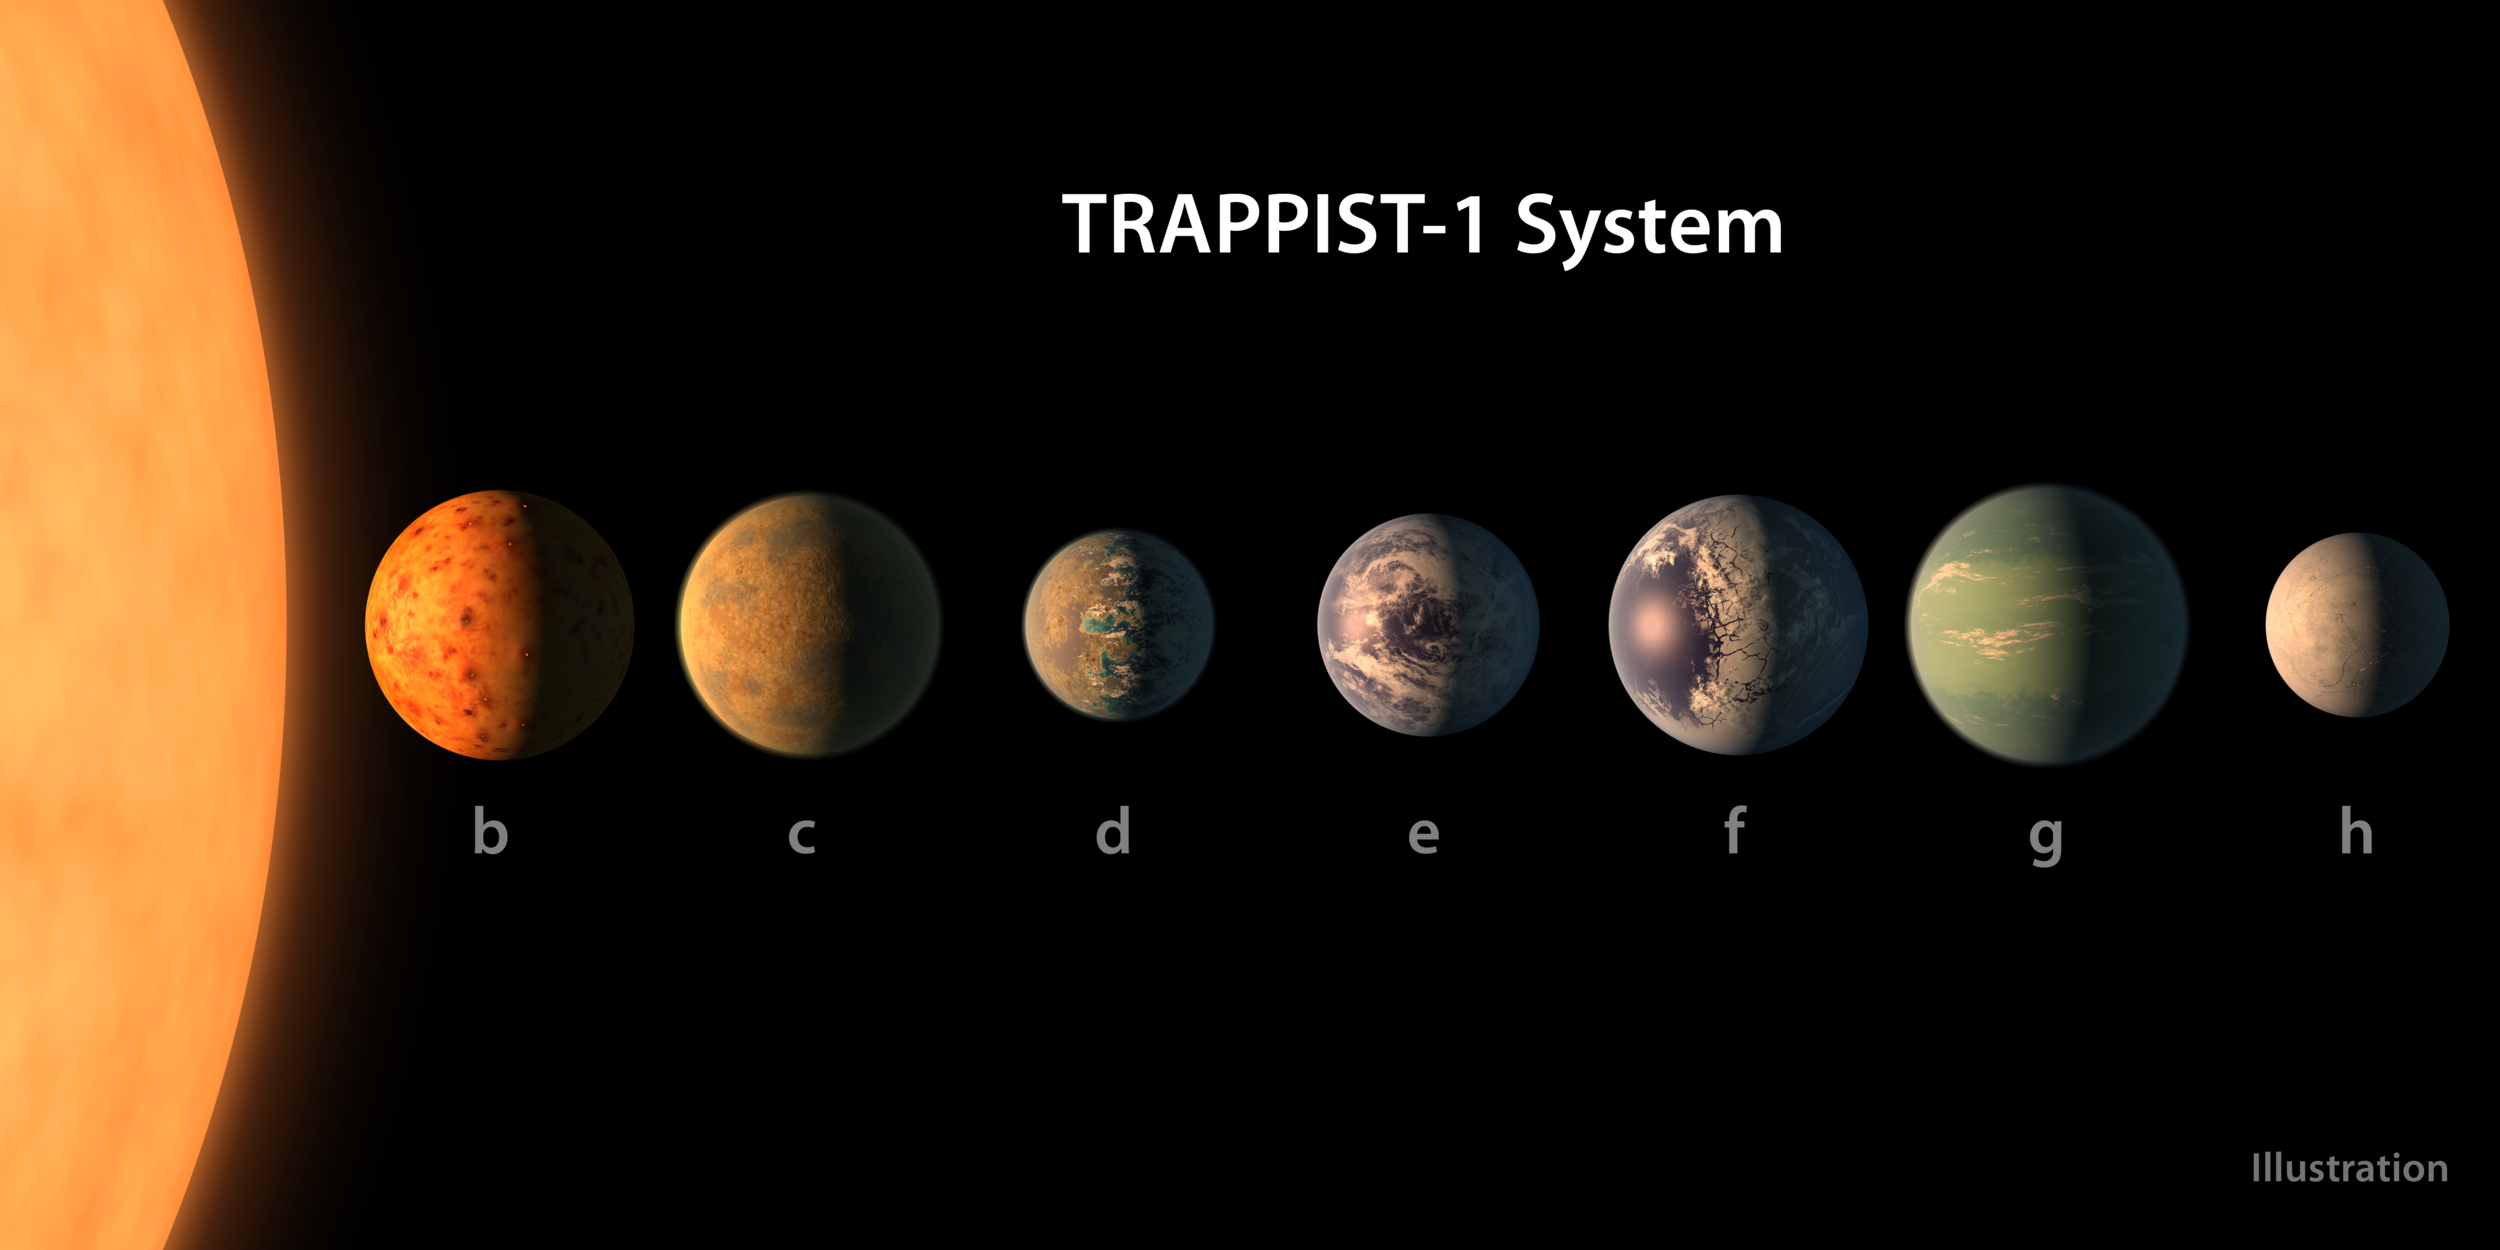 TRAPPIST-1 is an ultra-cool dwarf star in the constellation Aquarius, and its seven planets orbit very close to it. - Image Credits: NASA/JPL-Caltech